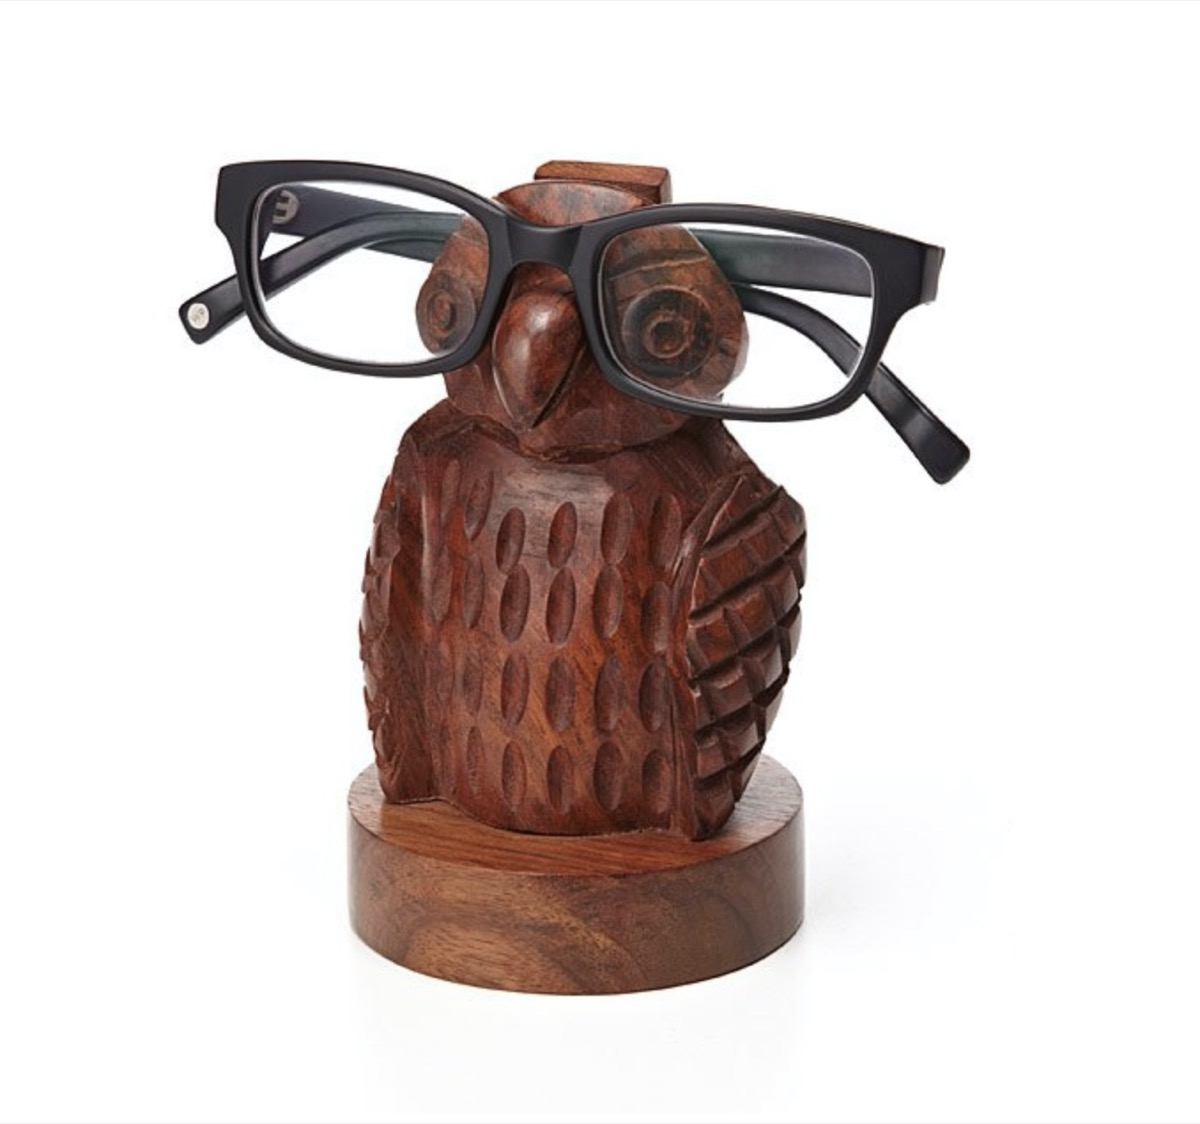 small wooden owel with black human eyeglasses on it